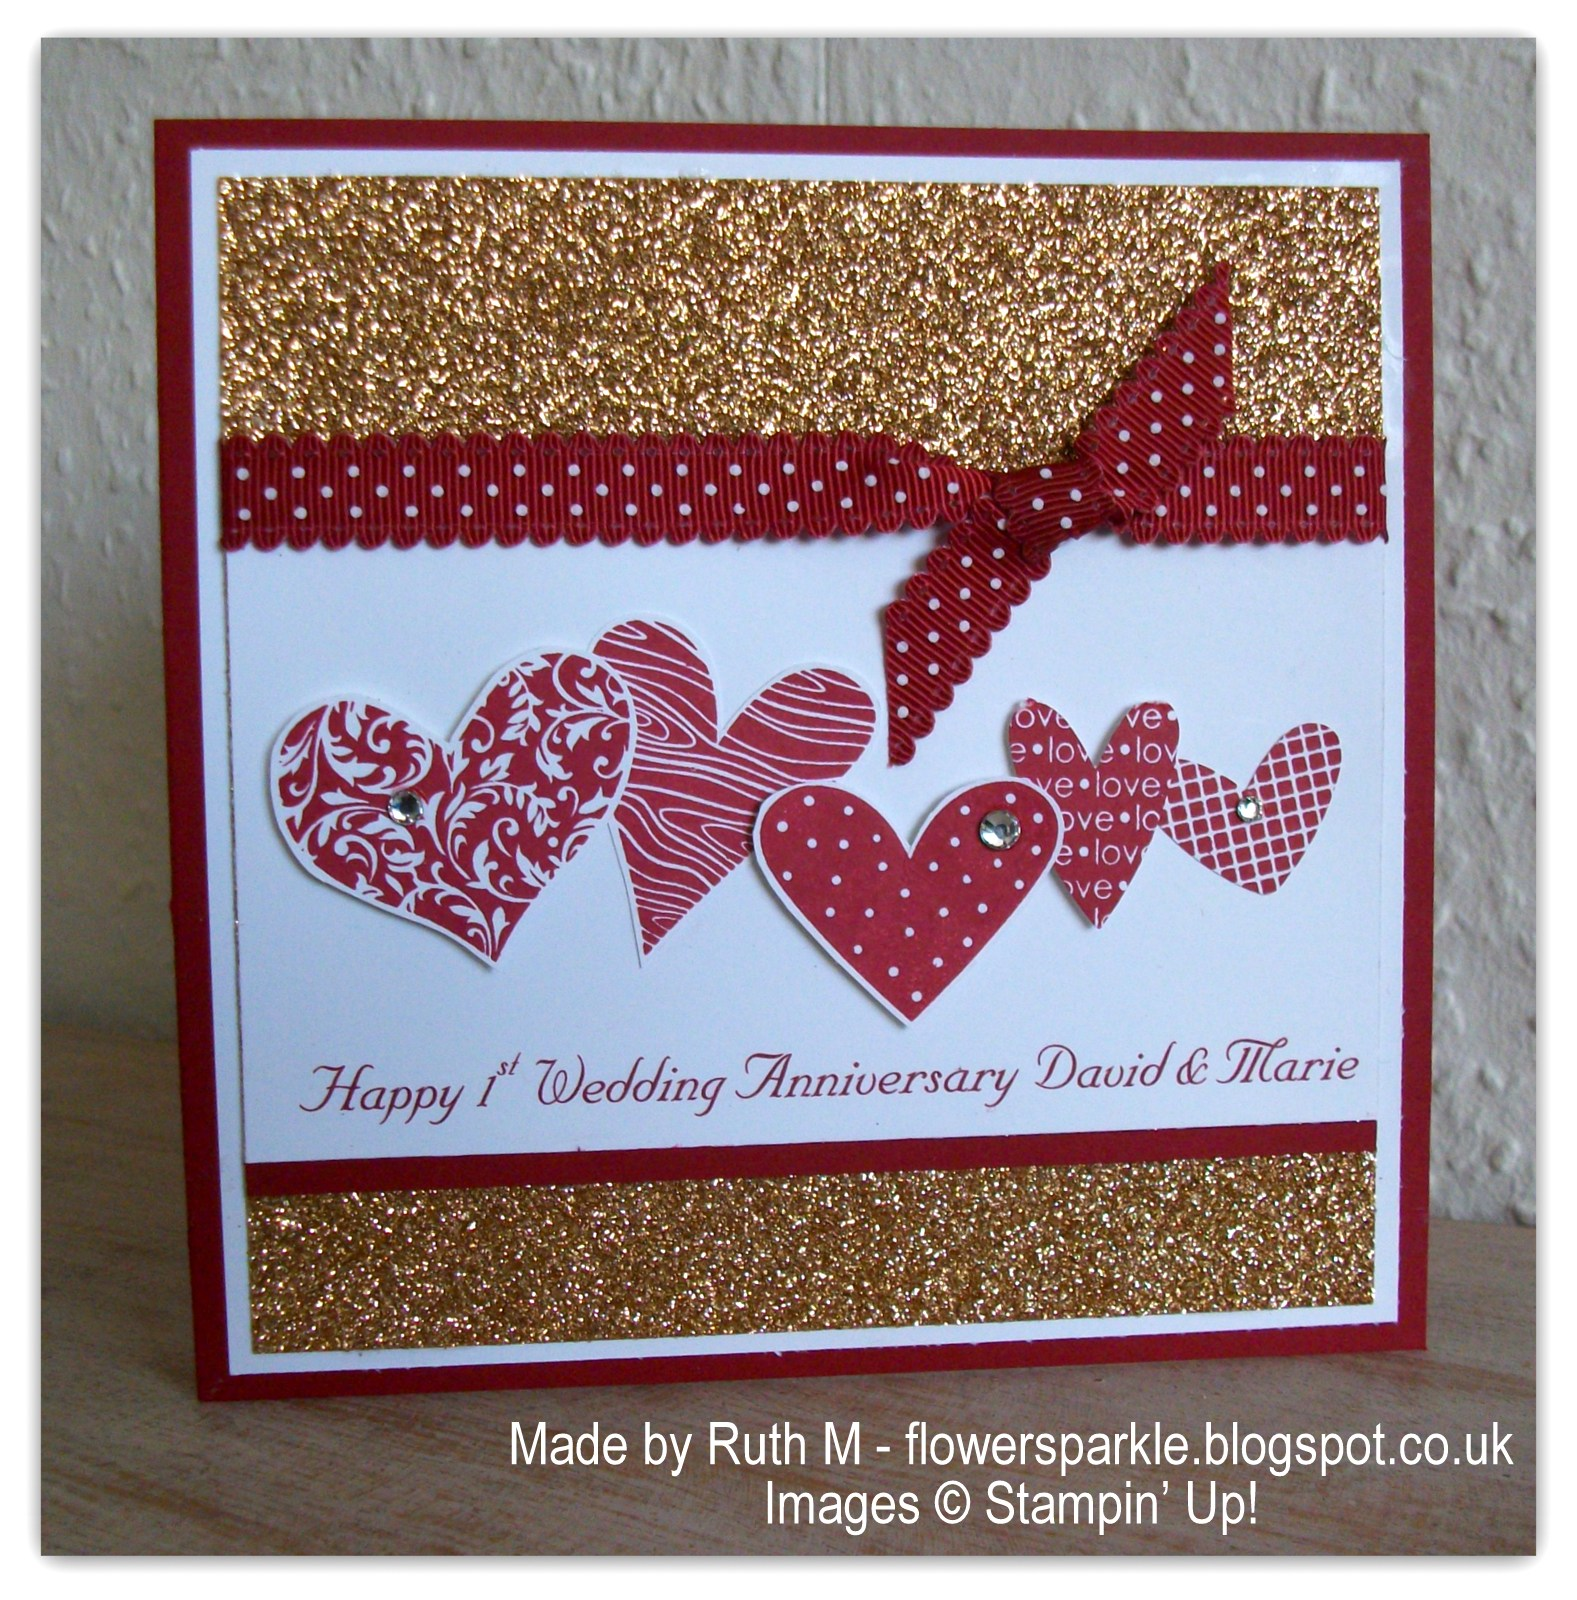 Flower sparkle hearts 1st wedding anniversary card hearts 1st wedding anniversary card m4hsunfo